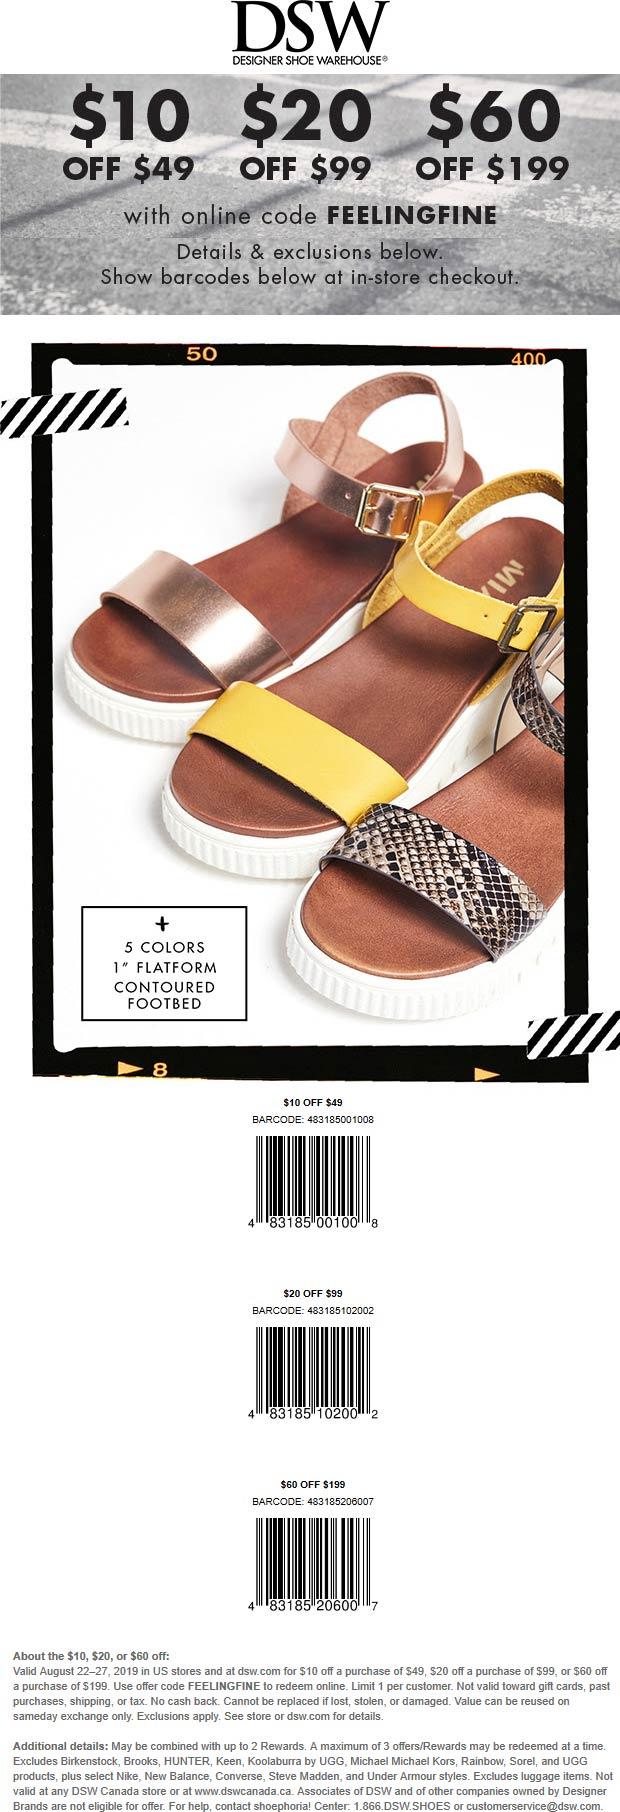 DSW Coupon January 2020 $10 off $49 & more at DSW shoe warehouse, or online via promo code FEELINGFINE